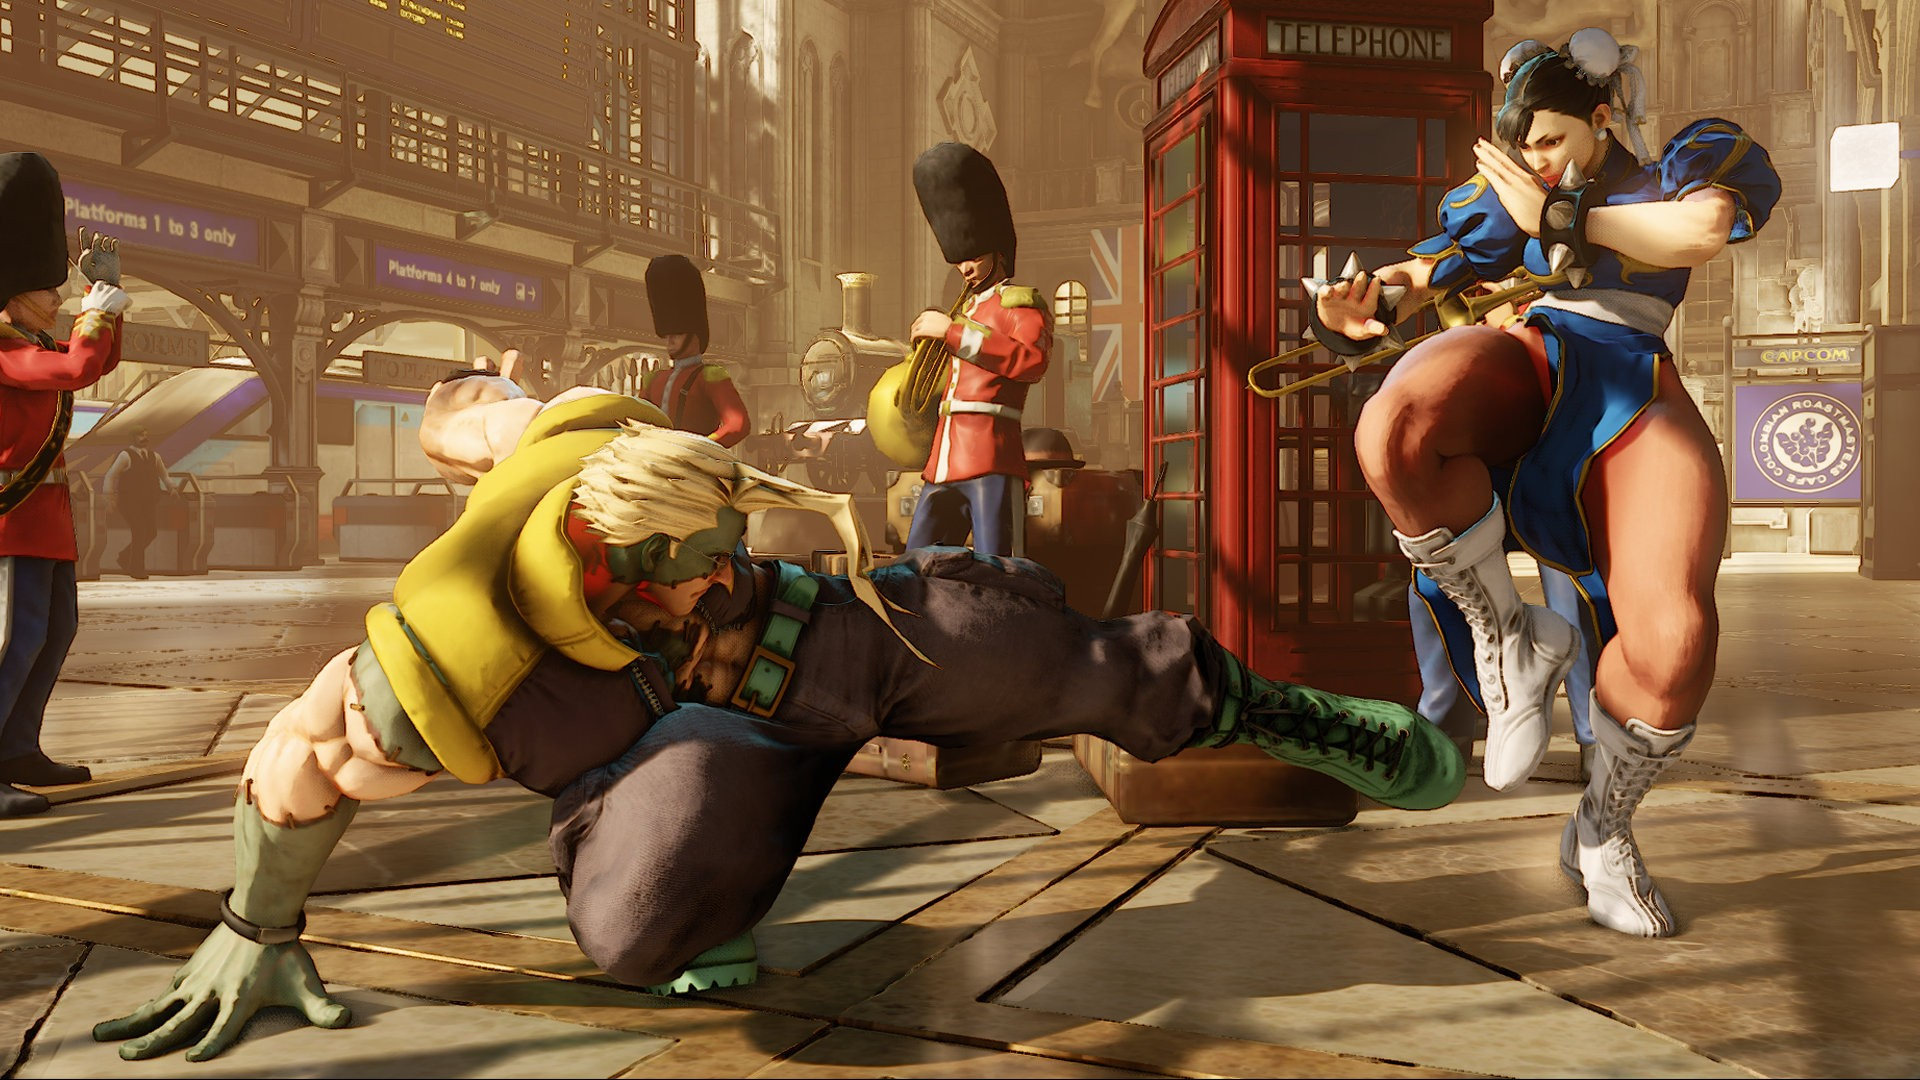 Street Fighter V (PS4) - Page 14 Street-fighter-v-data-mining-reveals-guile-alex-juri-ibuki-urien-and-balrog-as-dlc-characters-495708-2